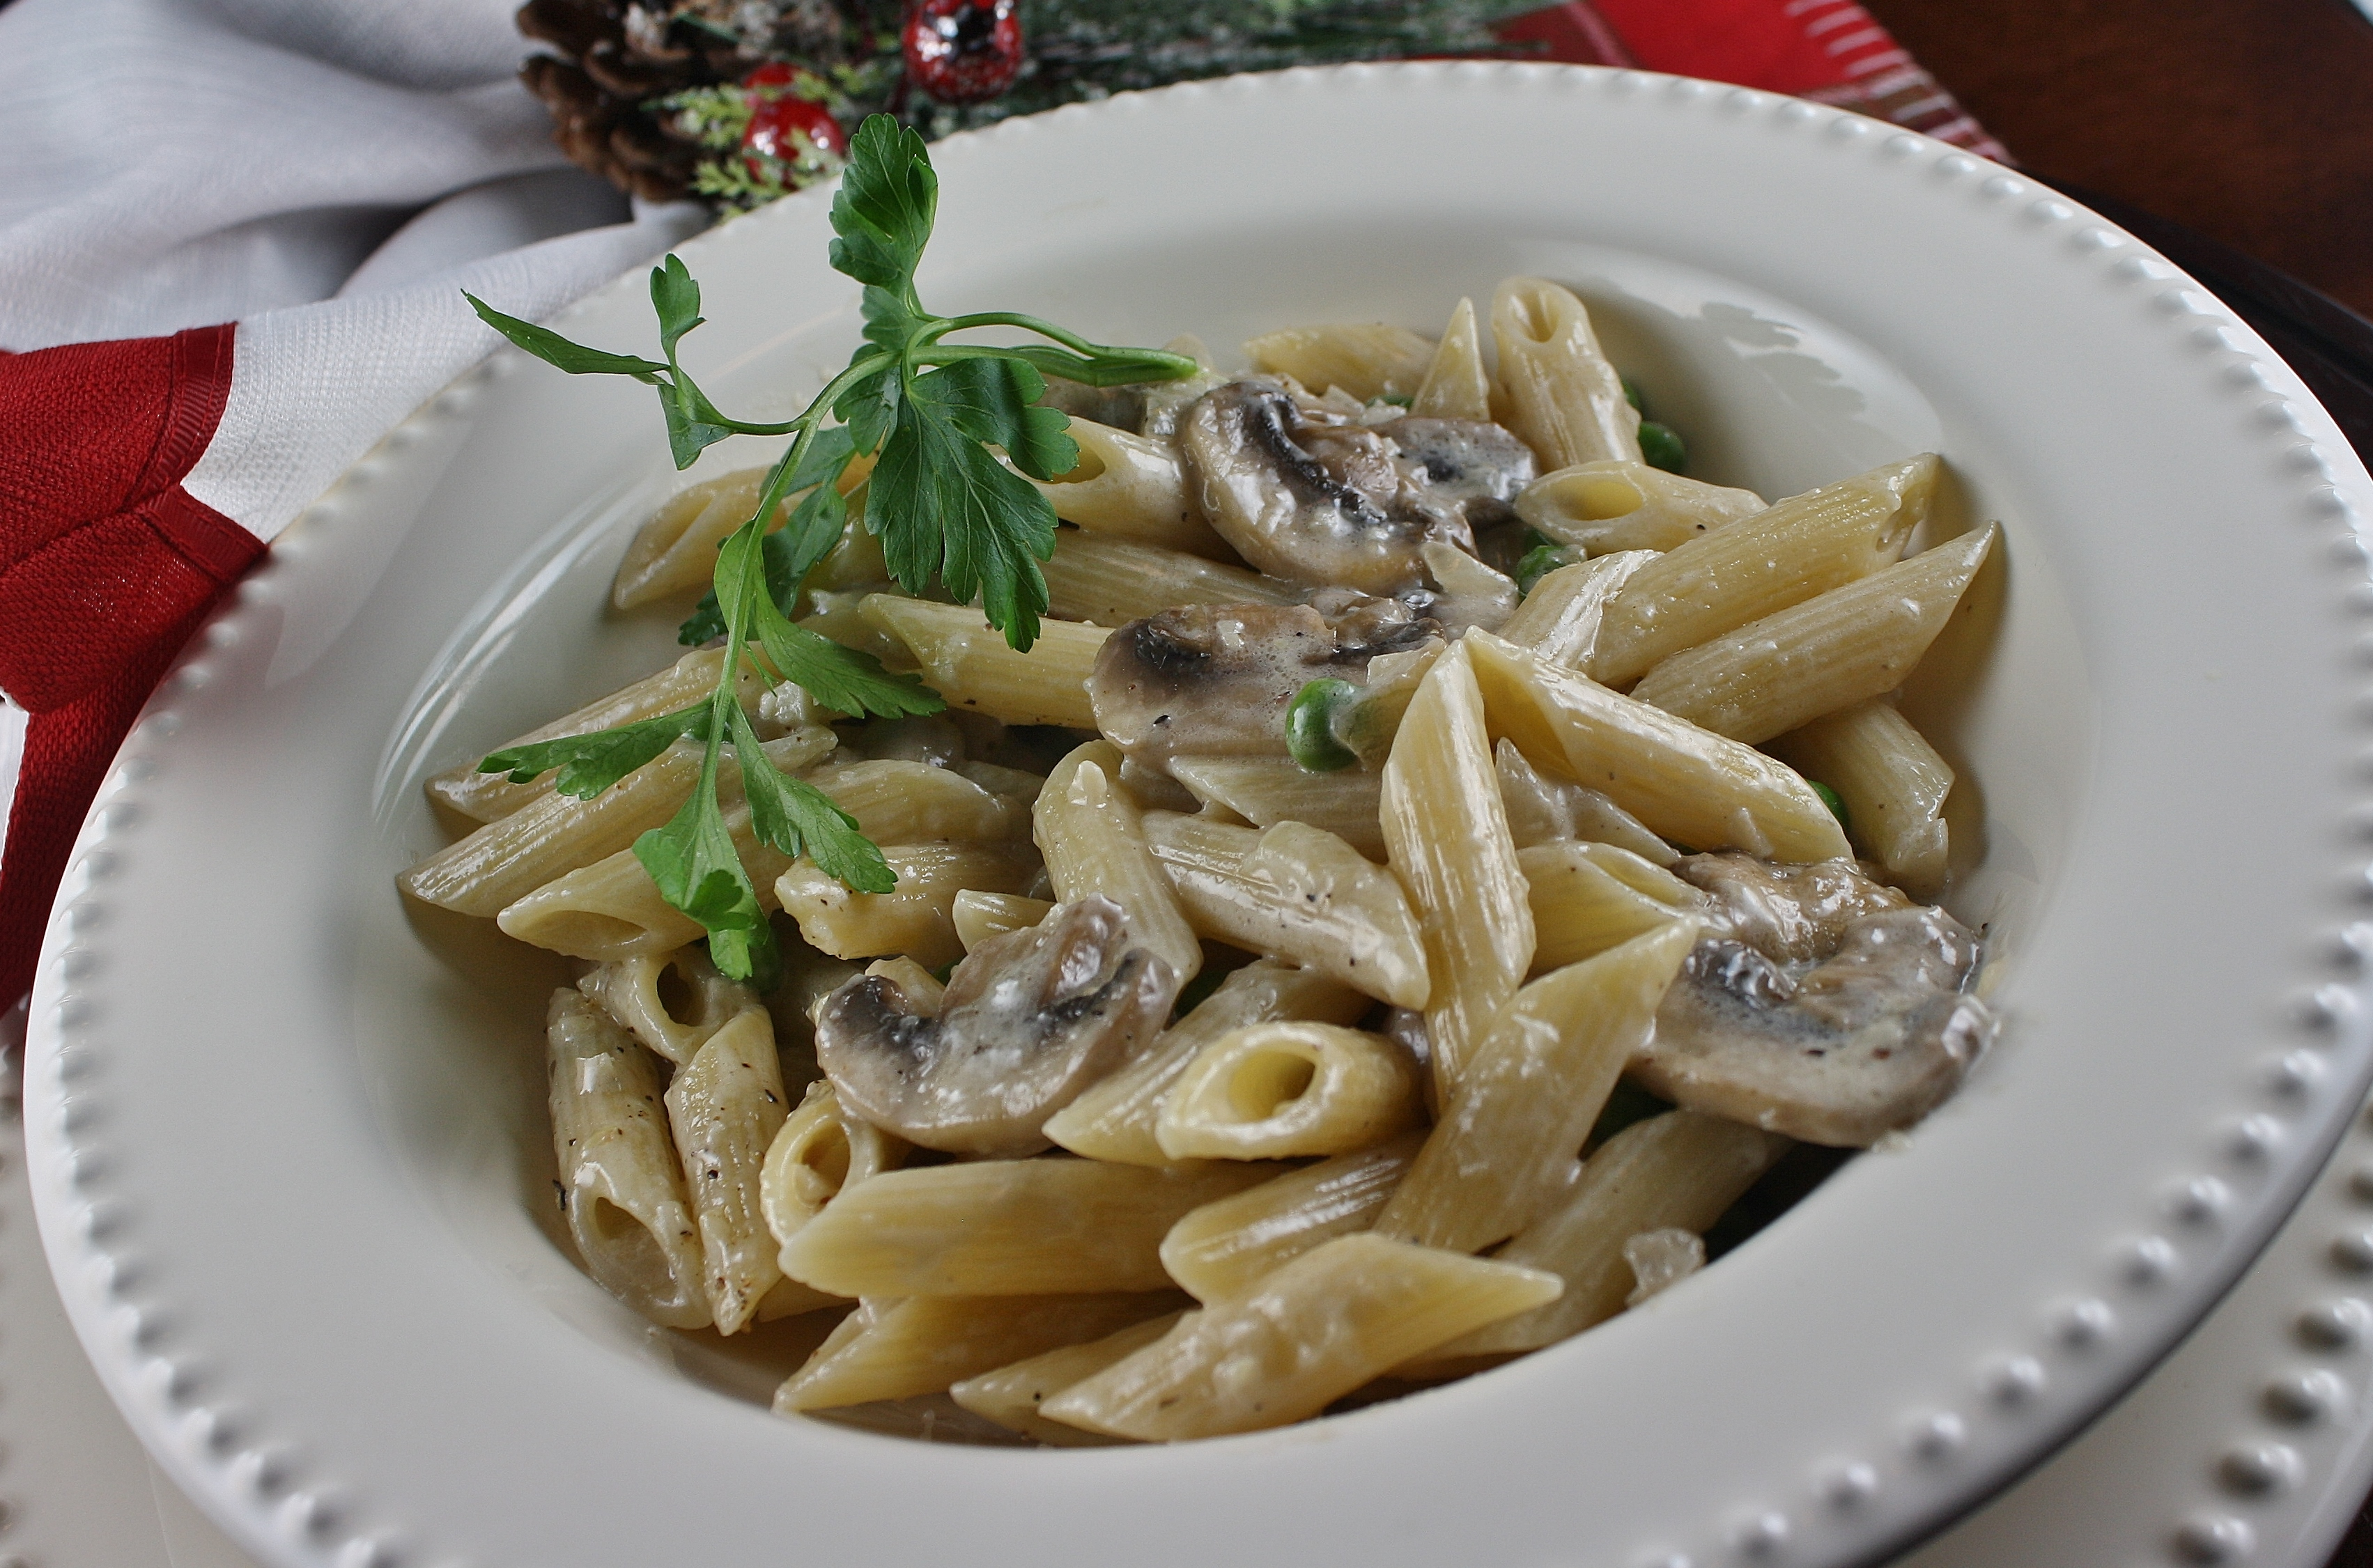 Gluten Free Penne with Mushrooms and Sweet Peas